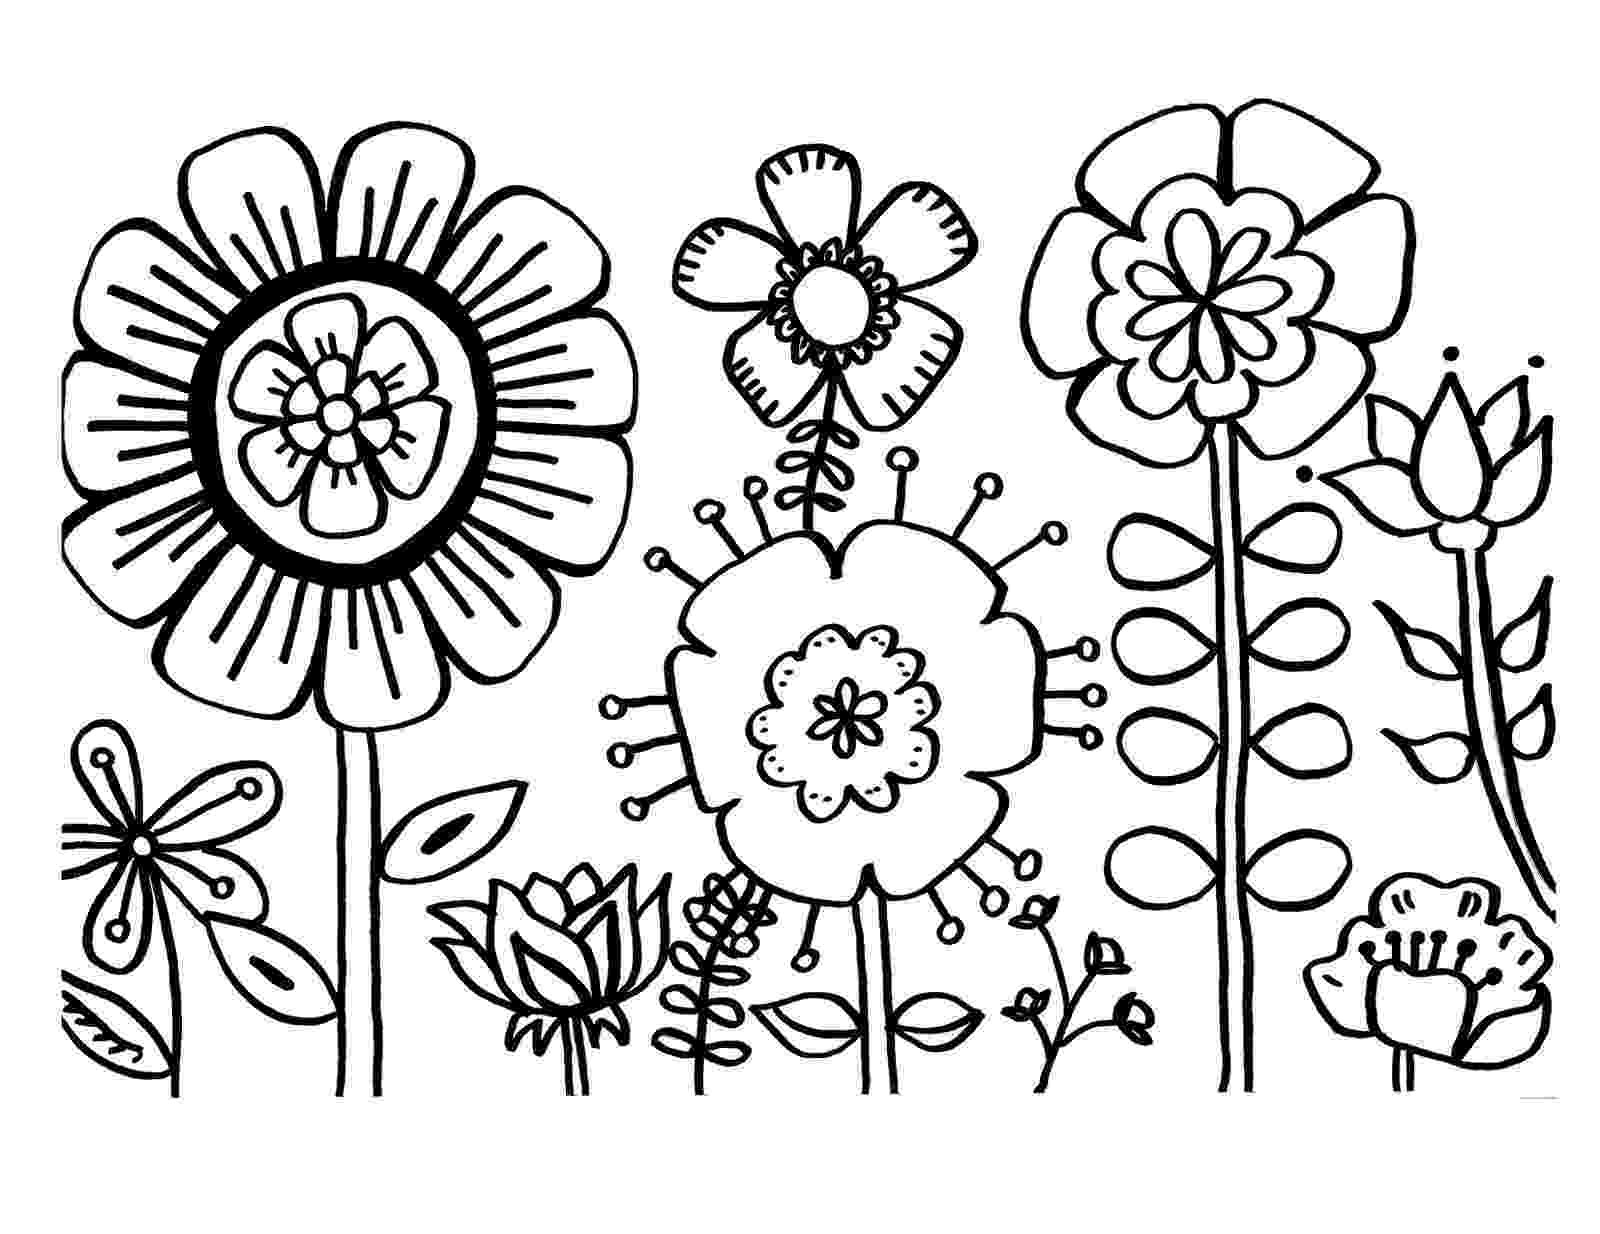 printable coloring pages plants plant coloring pages to download and print for free printable pages coloring plants